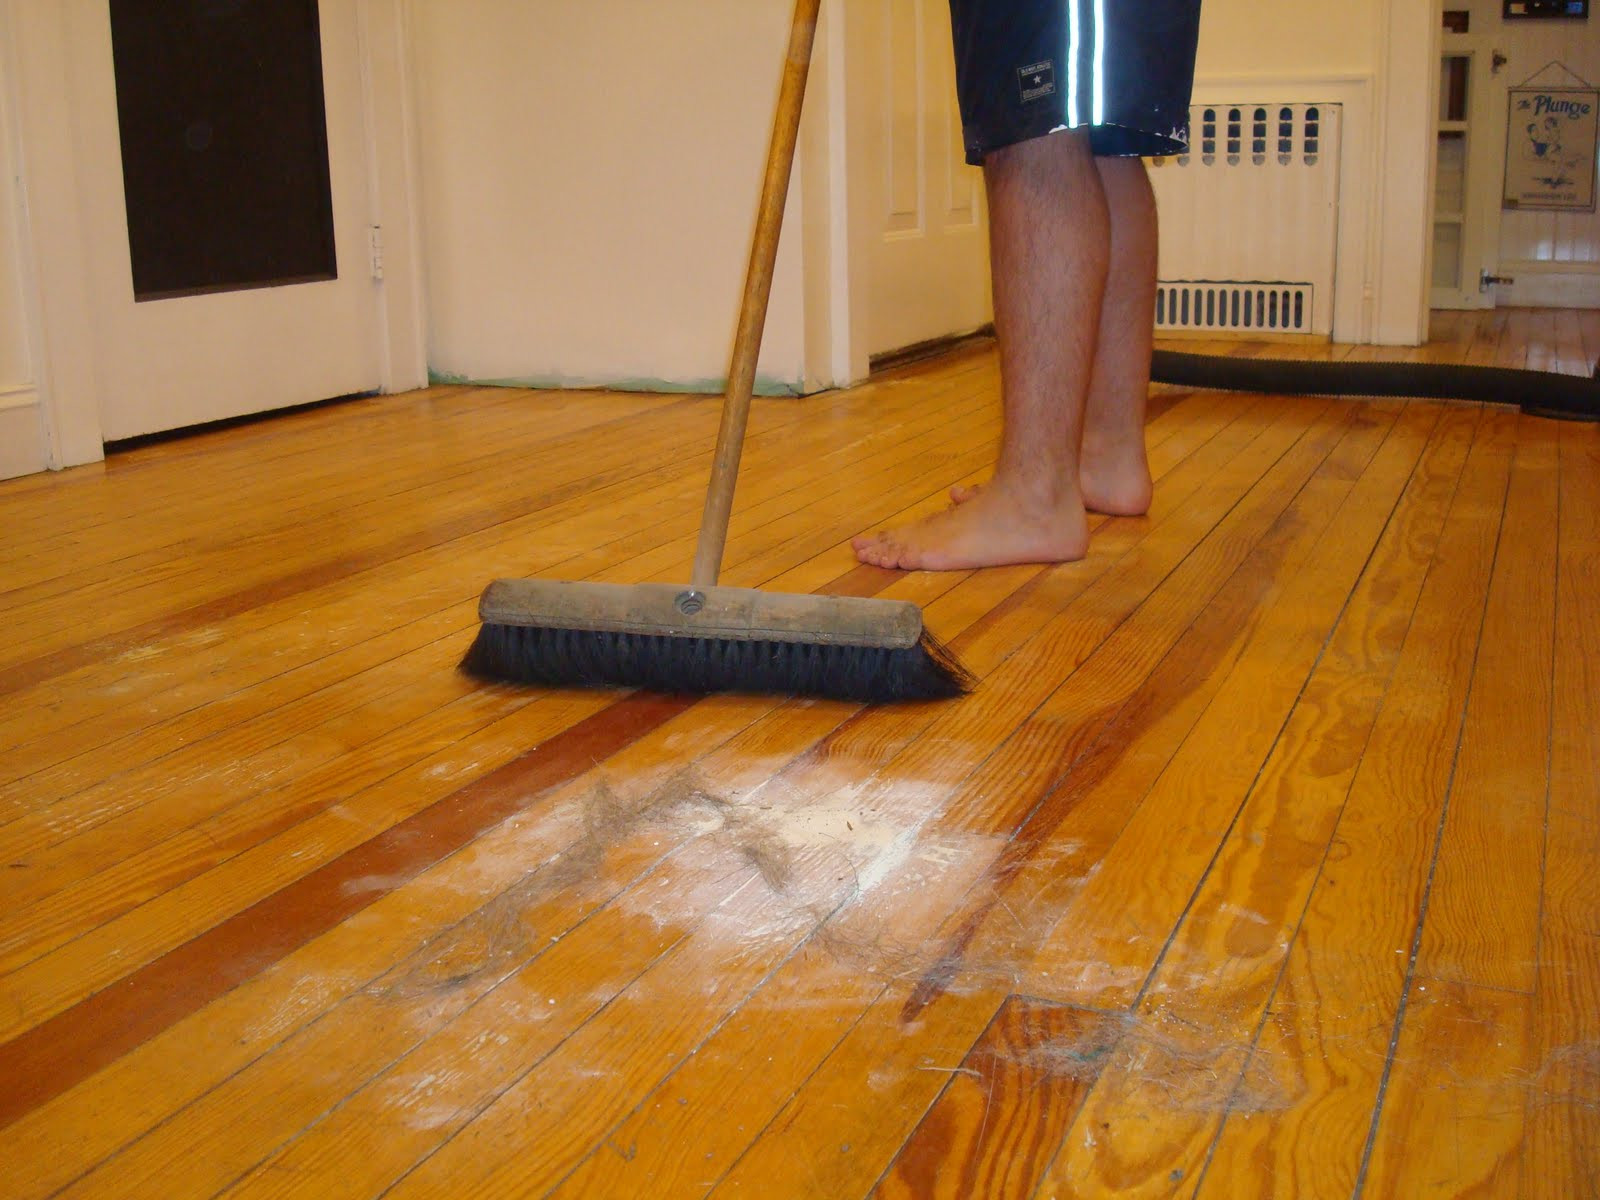 how do you clean hardwood floors with vinegar of cleaning hardwood floors with vinegar hardwood floor cleaning how do with cleaning hardwood floors with vinegar hardwood floor cleaning how do you clean hardwood floors cleaning